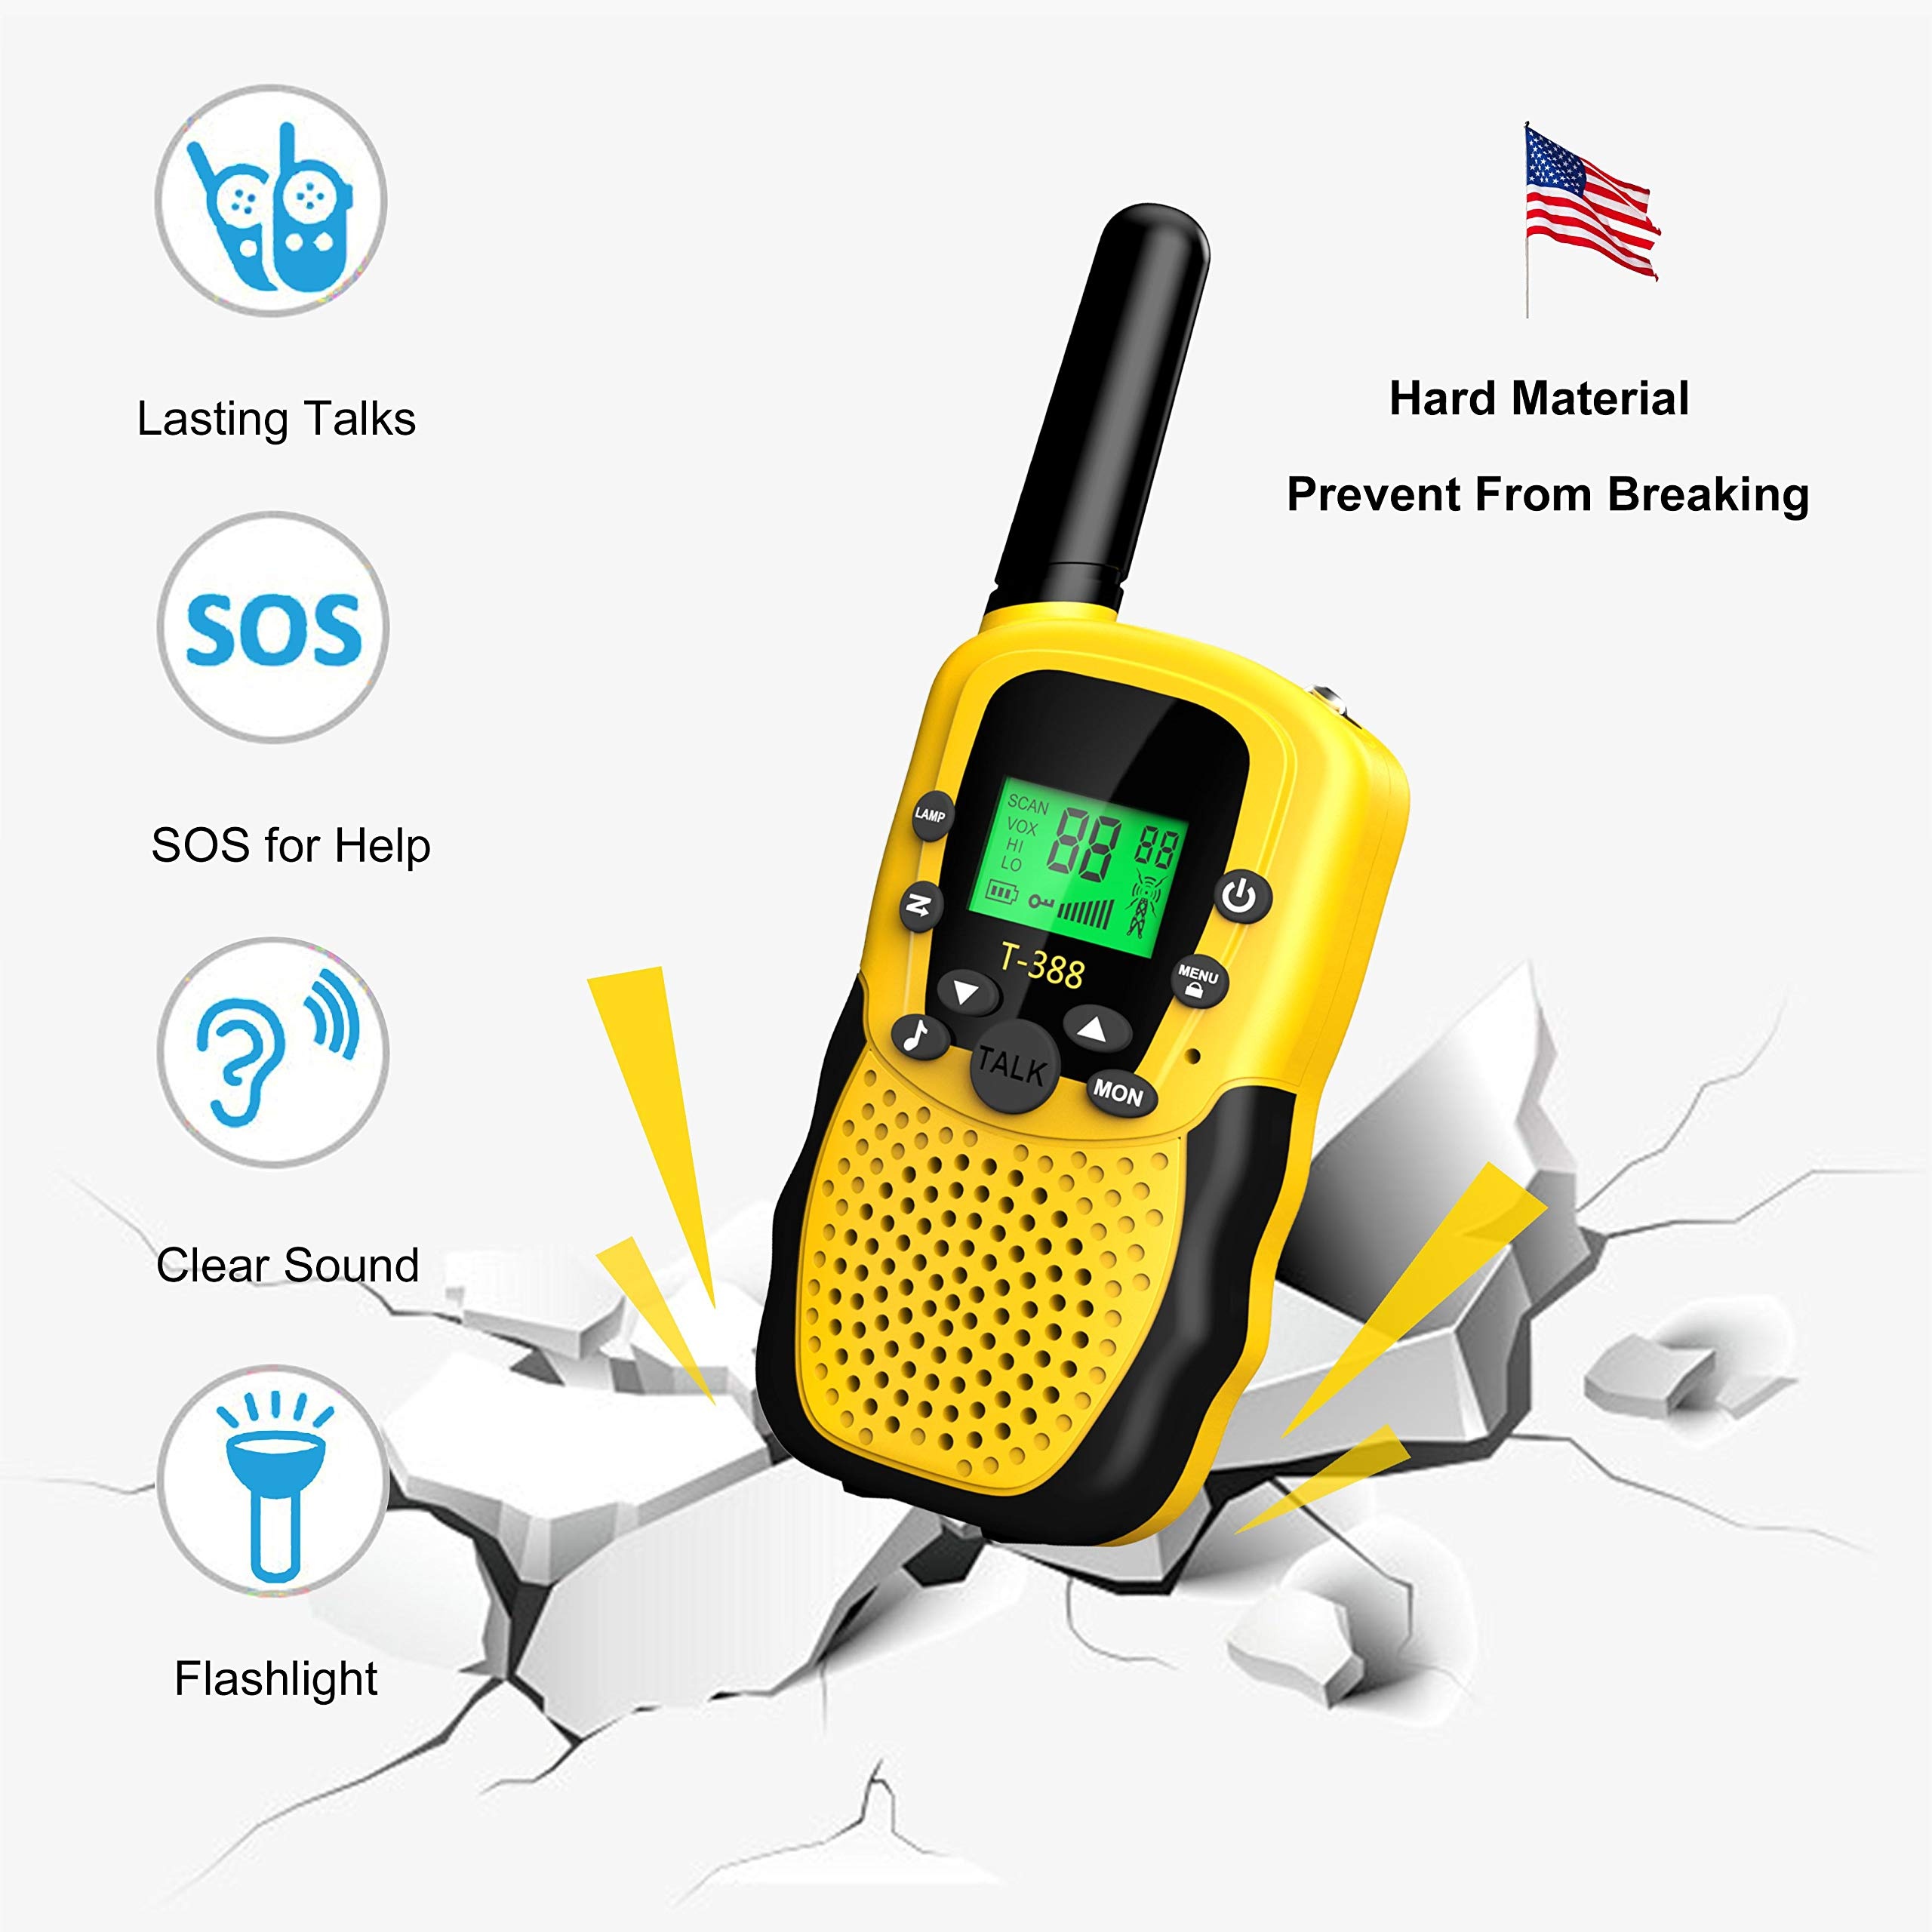 Walkies Talkies for Kids, 22 Channels FRS/GMRS UHF Two Way Radios 4 Miles Handheld Mini Kids Walkie Talkies for Kids Best Gifts Kids Toys Built in Flashlight by JimBest1970 (Image #5)